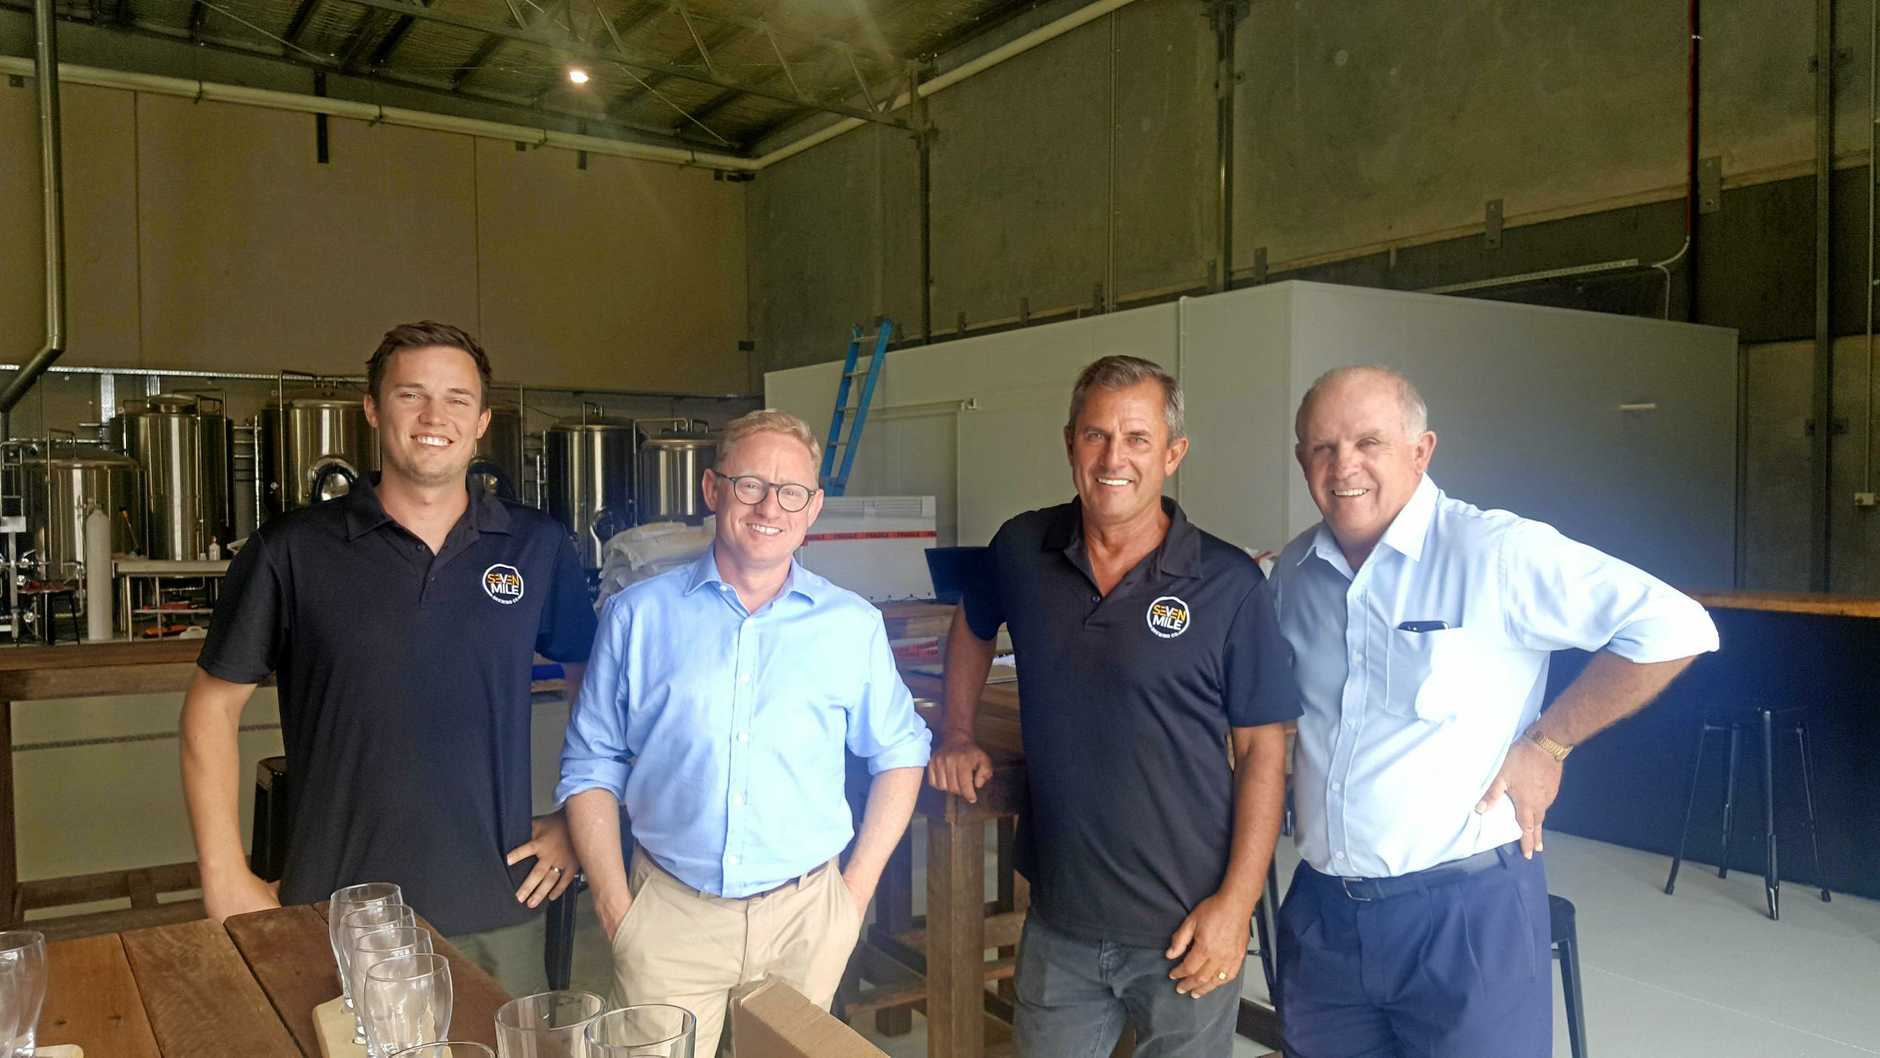 Matt and Lou Wilson of Seven Mile Brewery with Ben Franklin and Senator Williams at the Seven Mile Brewery. They are visiting projects on the North Coast that have received funding under the Regional Jobs and Investment Package.